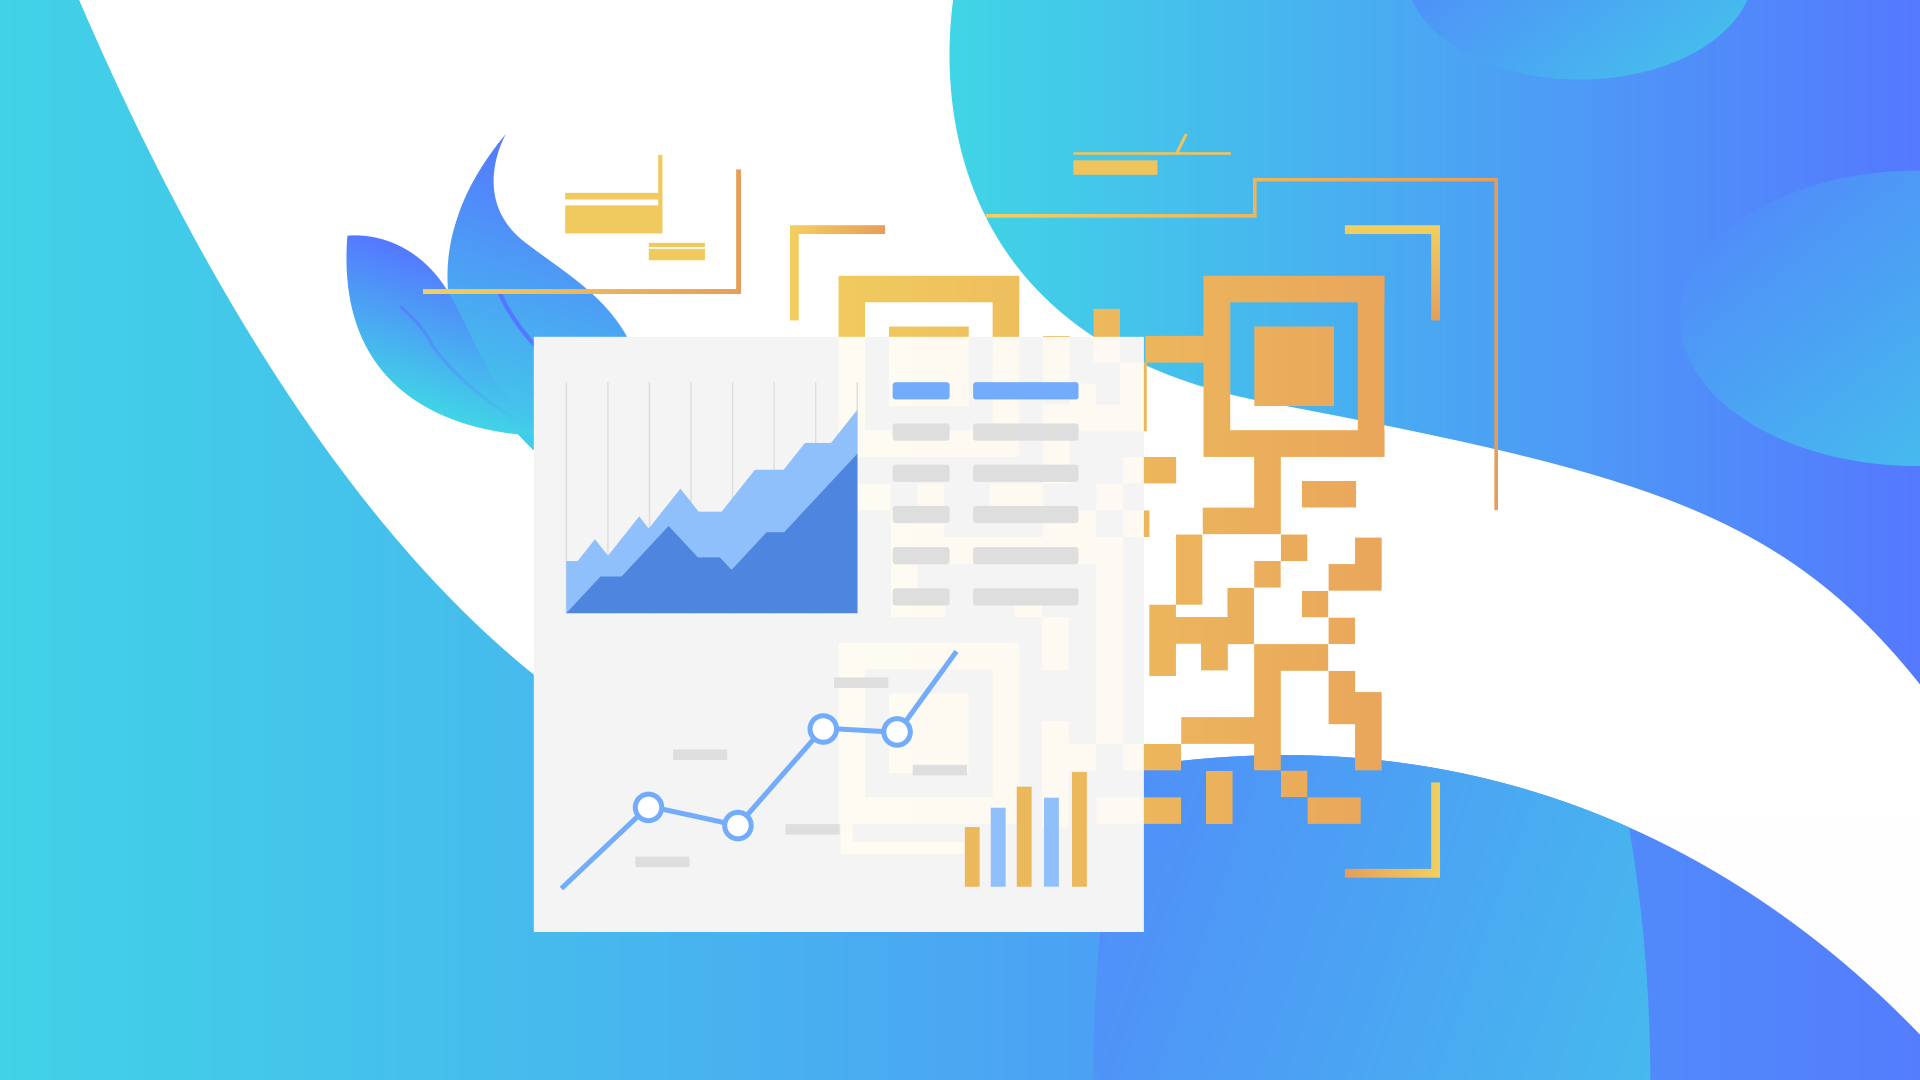 Crash reporting app analytics tools ensure profound monitoring and analysis of existing problems on different devices to update or improve an app.